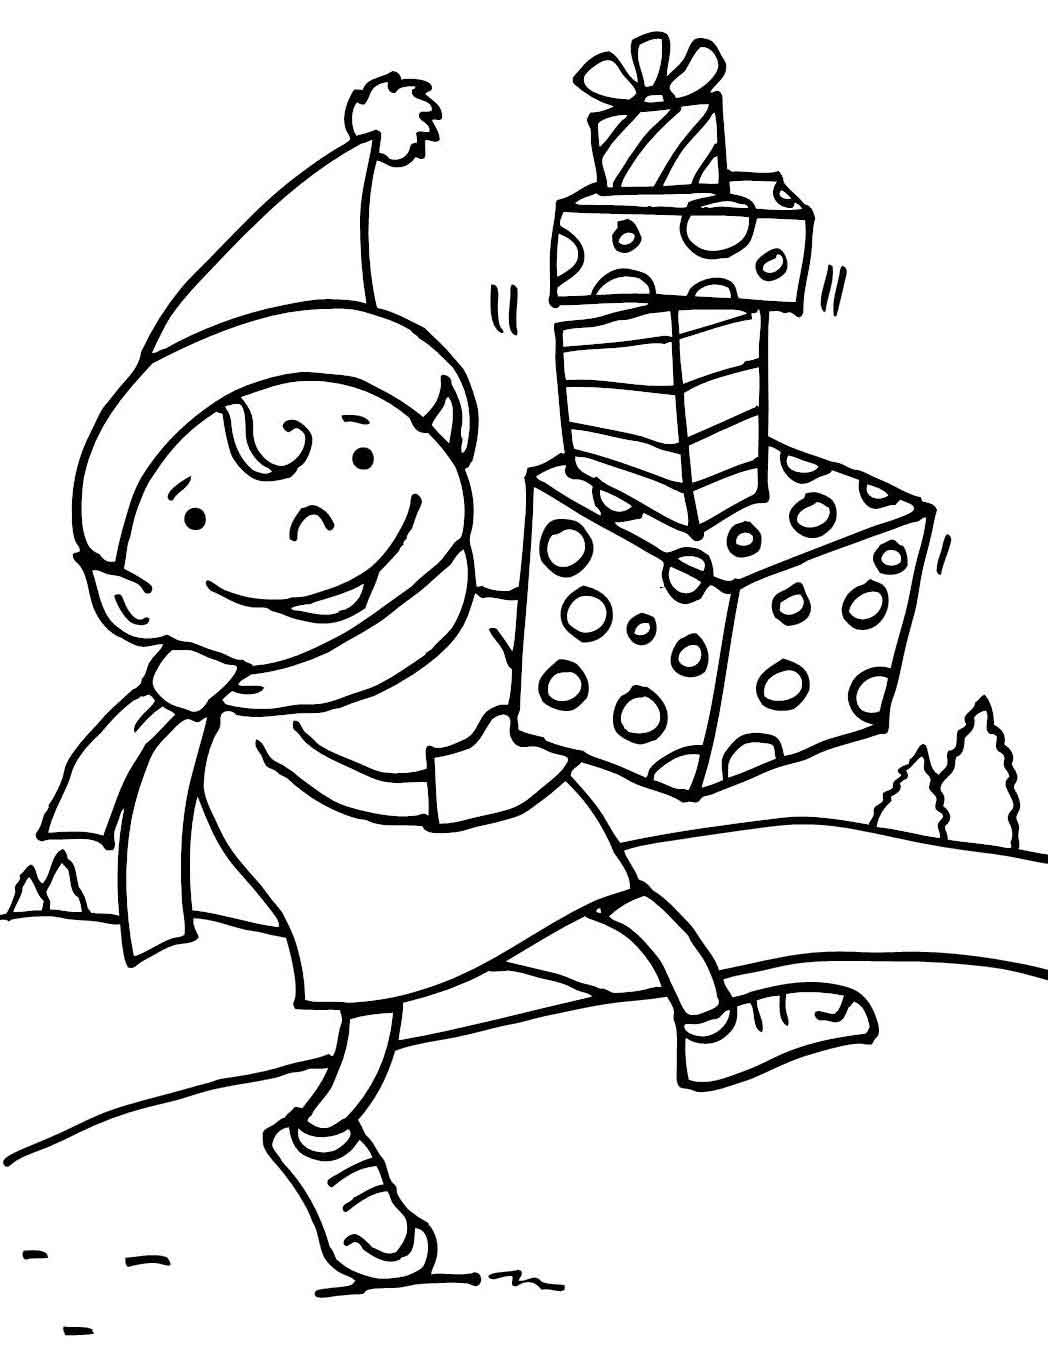 Christmas Elf Coloring Pages Printable at GetDrawings ...